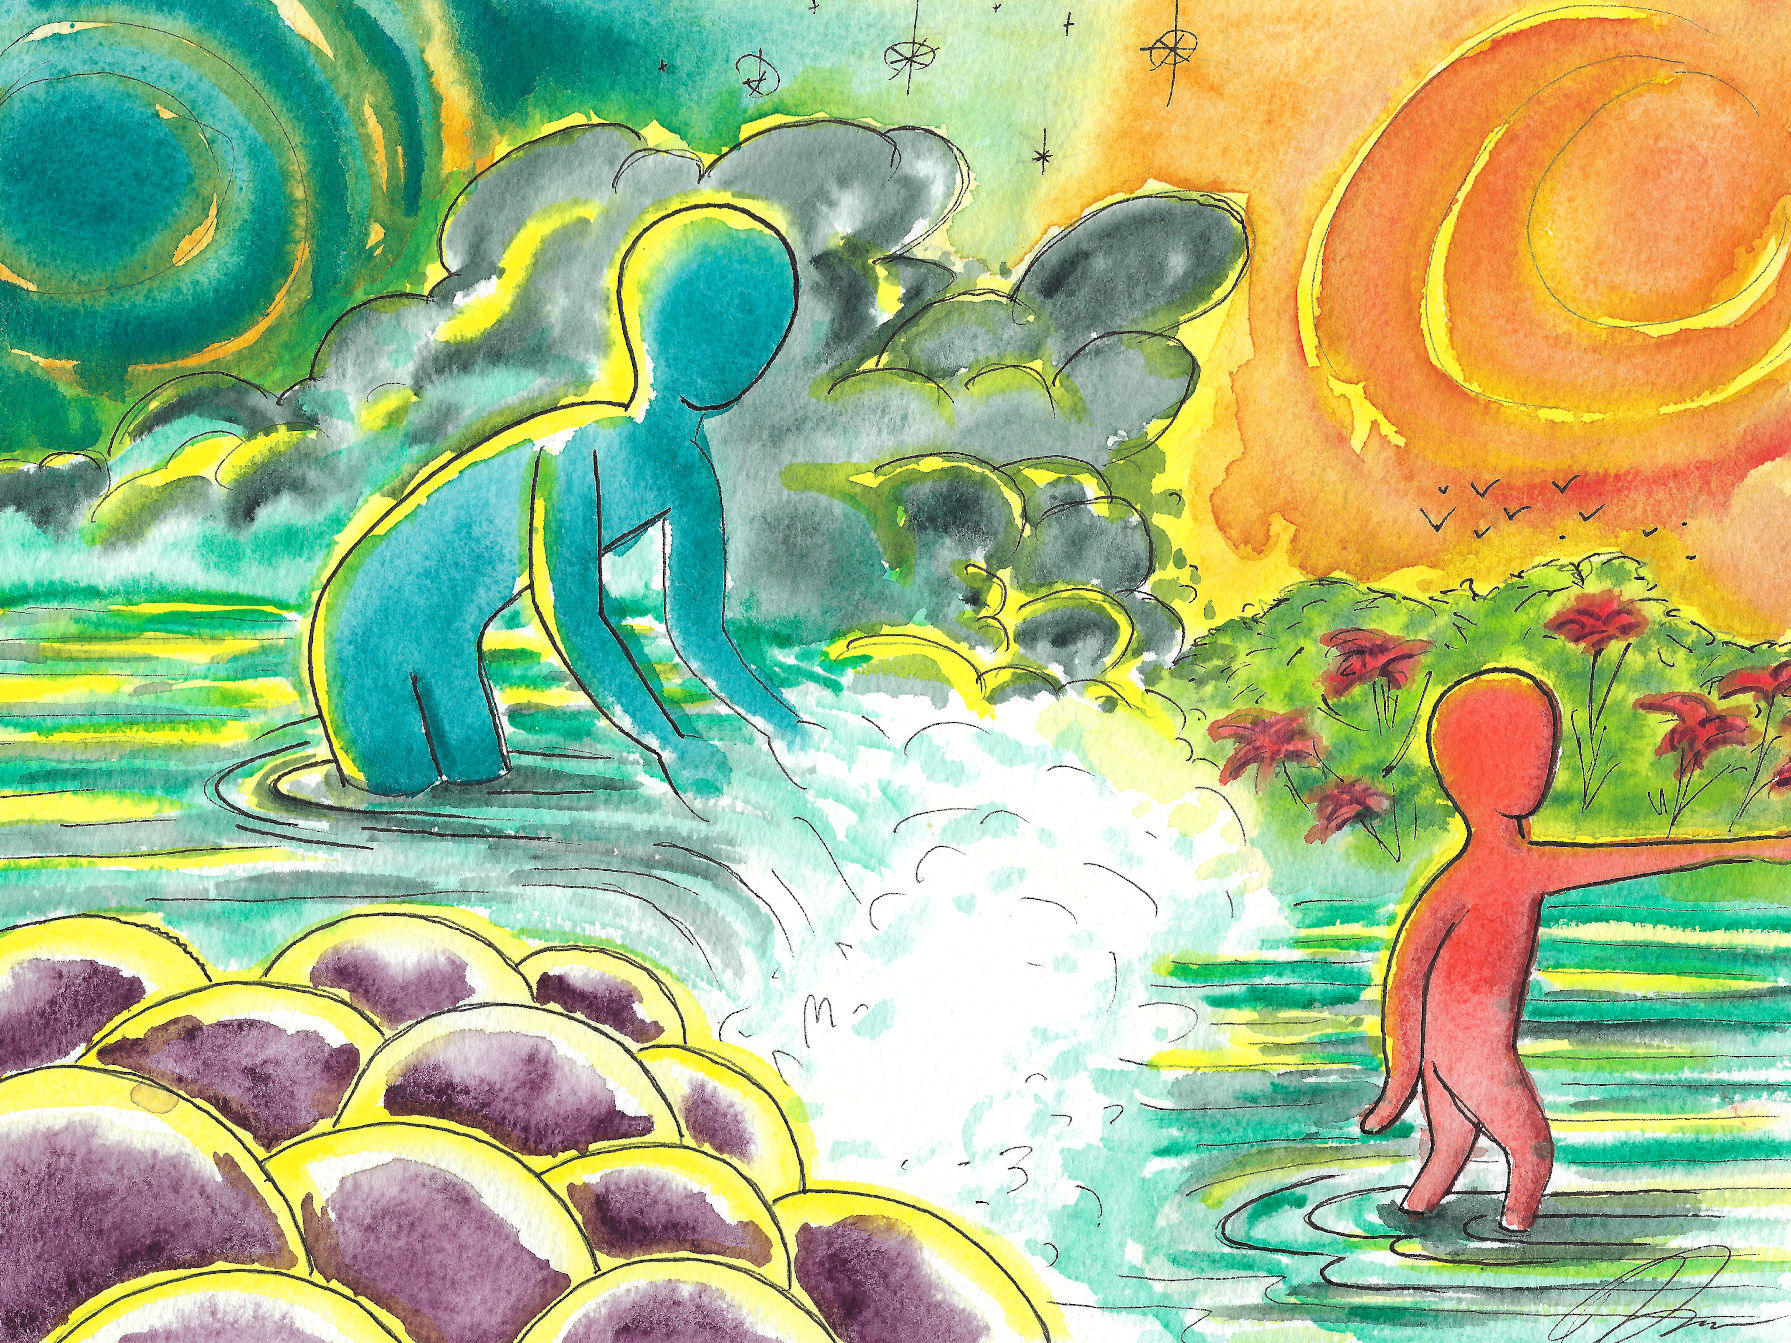 Abstract watercolor painting of adult and child figures in a stream.